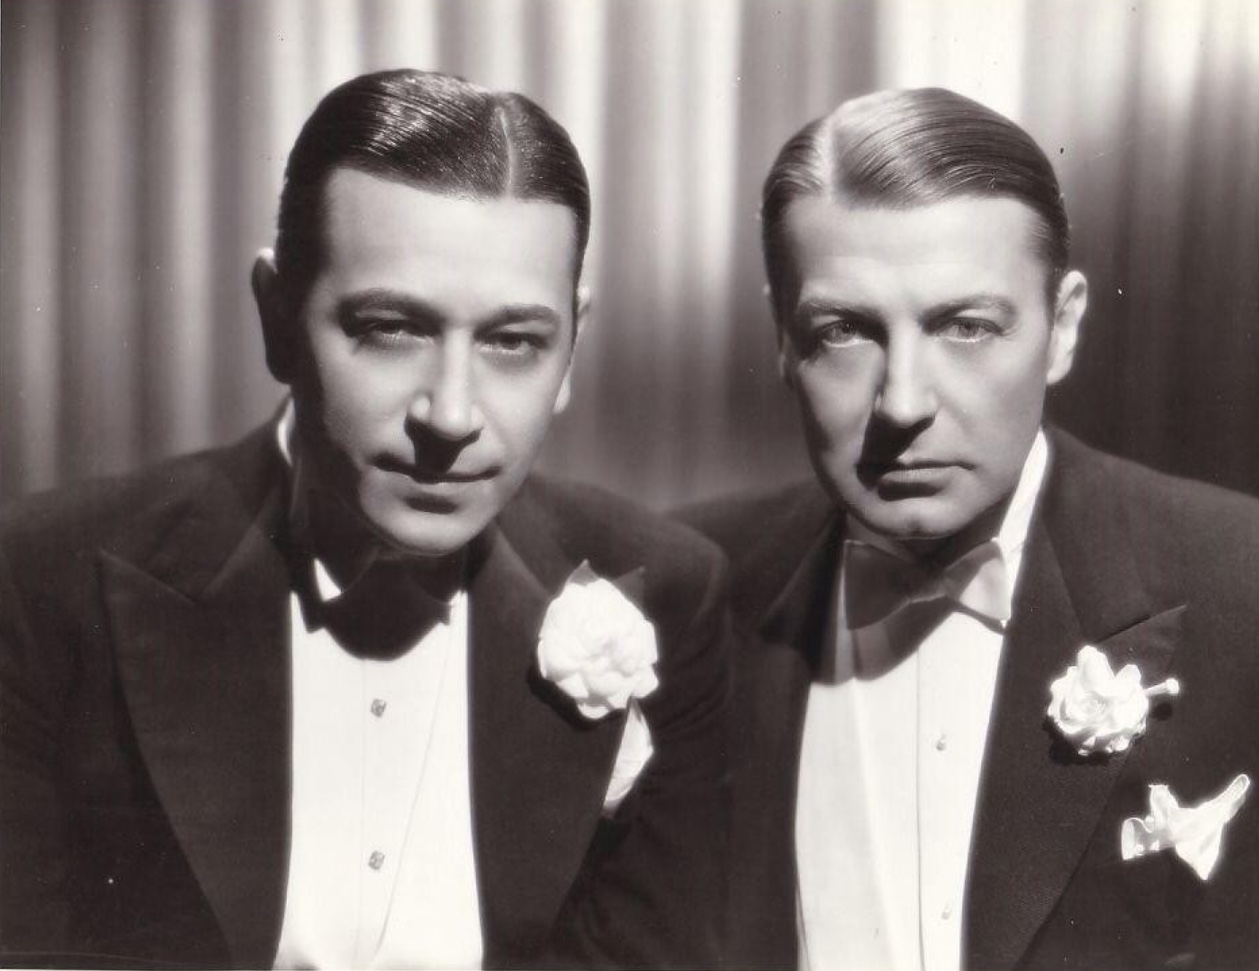 Clive Brook and George Raft in Midnight Club (1933)